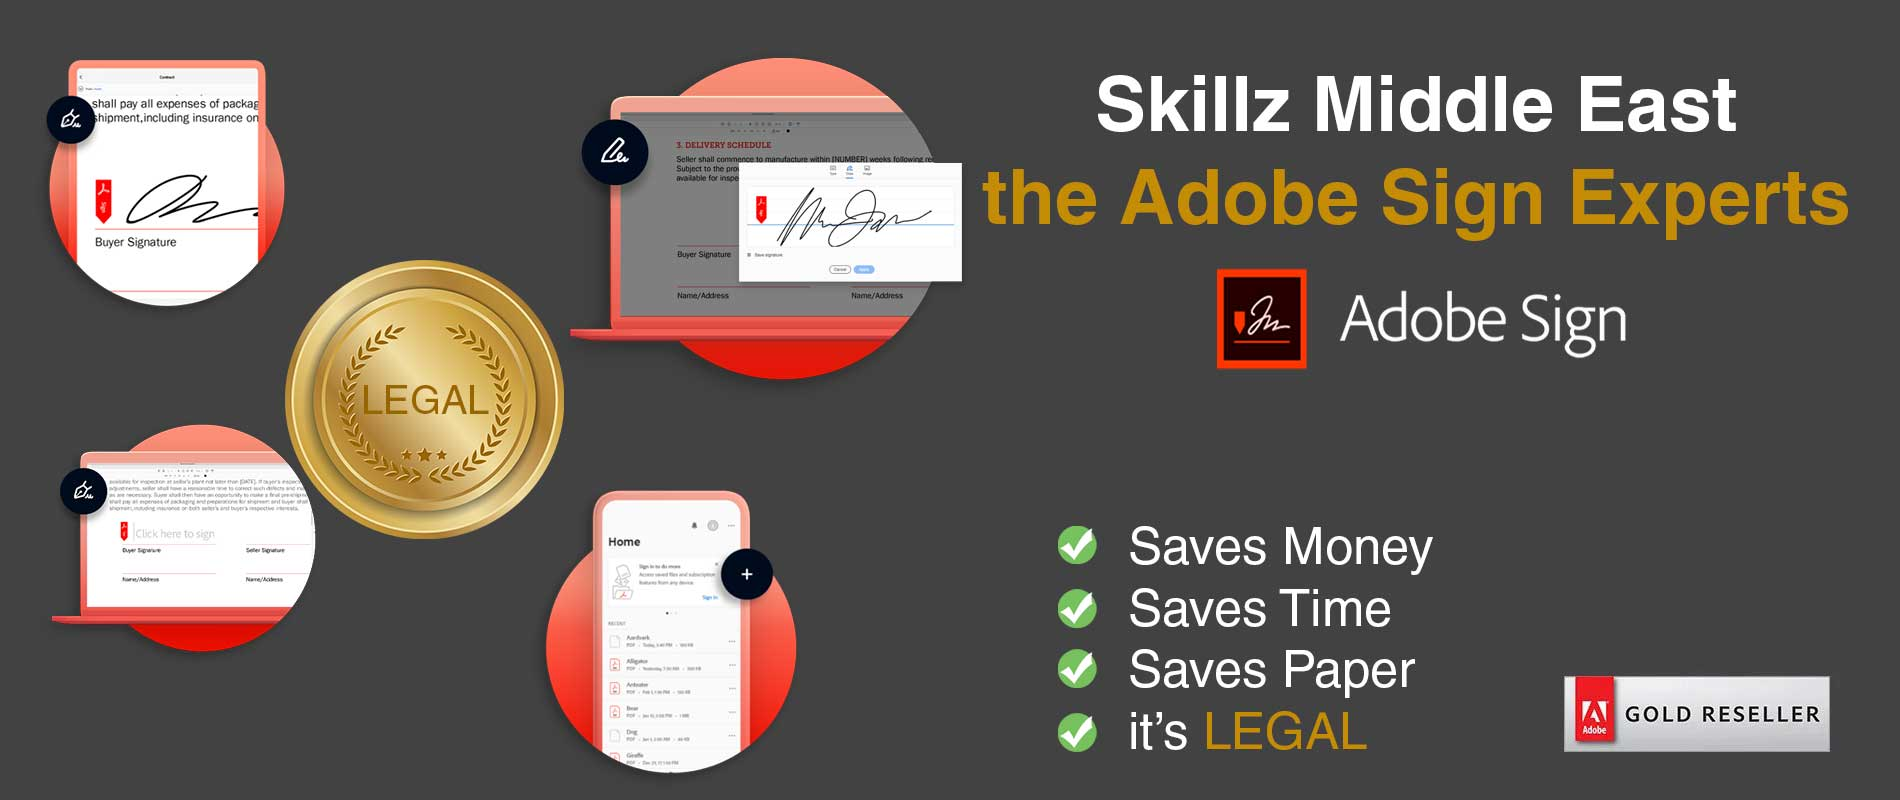 Adobe Sign Experts